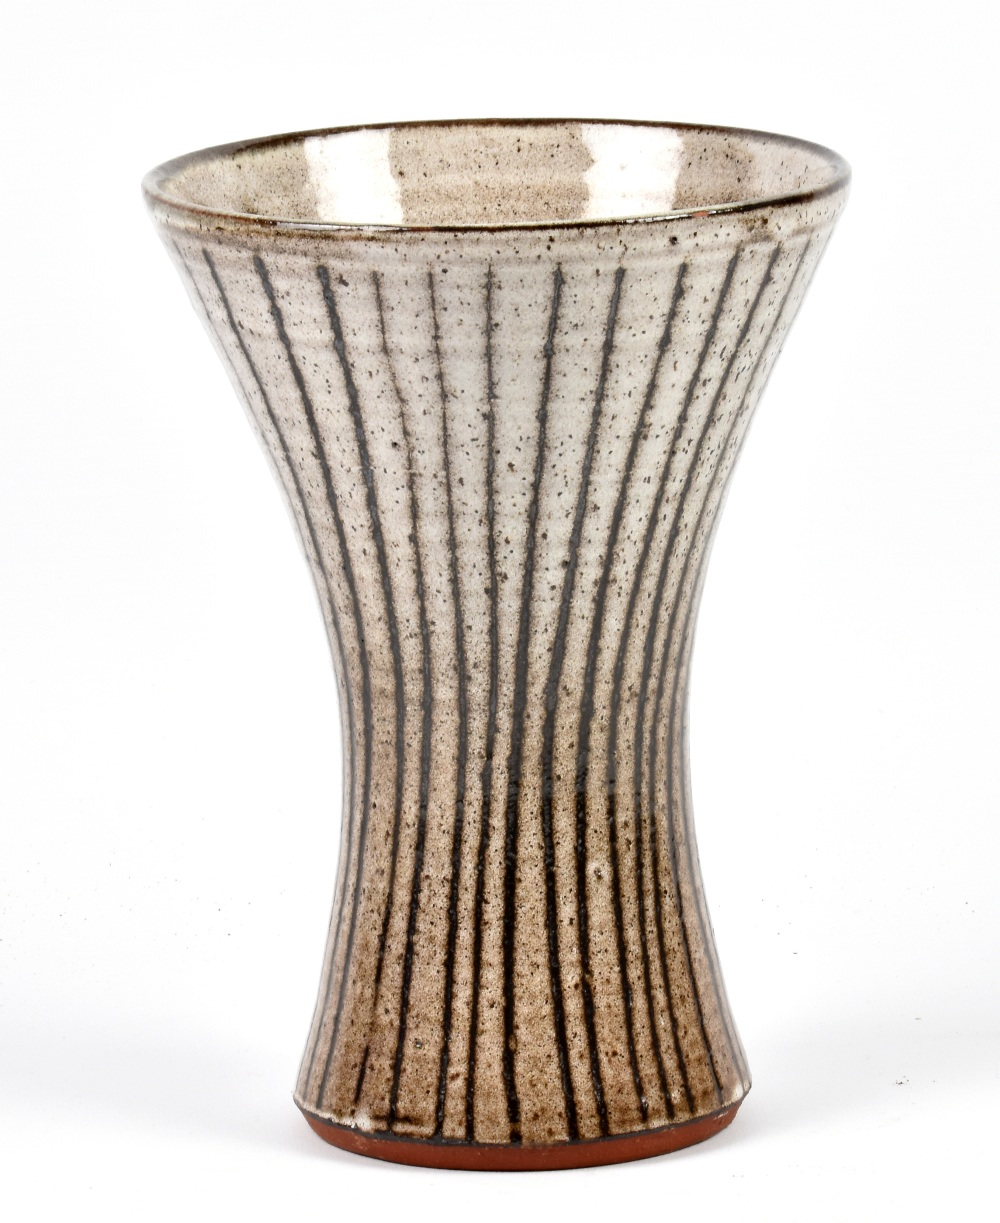 Lot 97 - DAVID LEACH (1911-2005) for Lowerdown Pottery; a large tin glazed earthenware waisted vase,